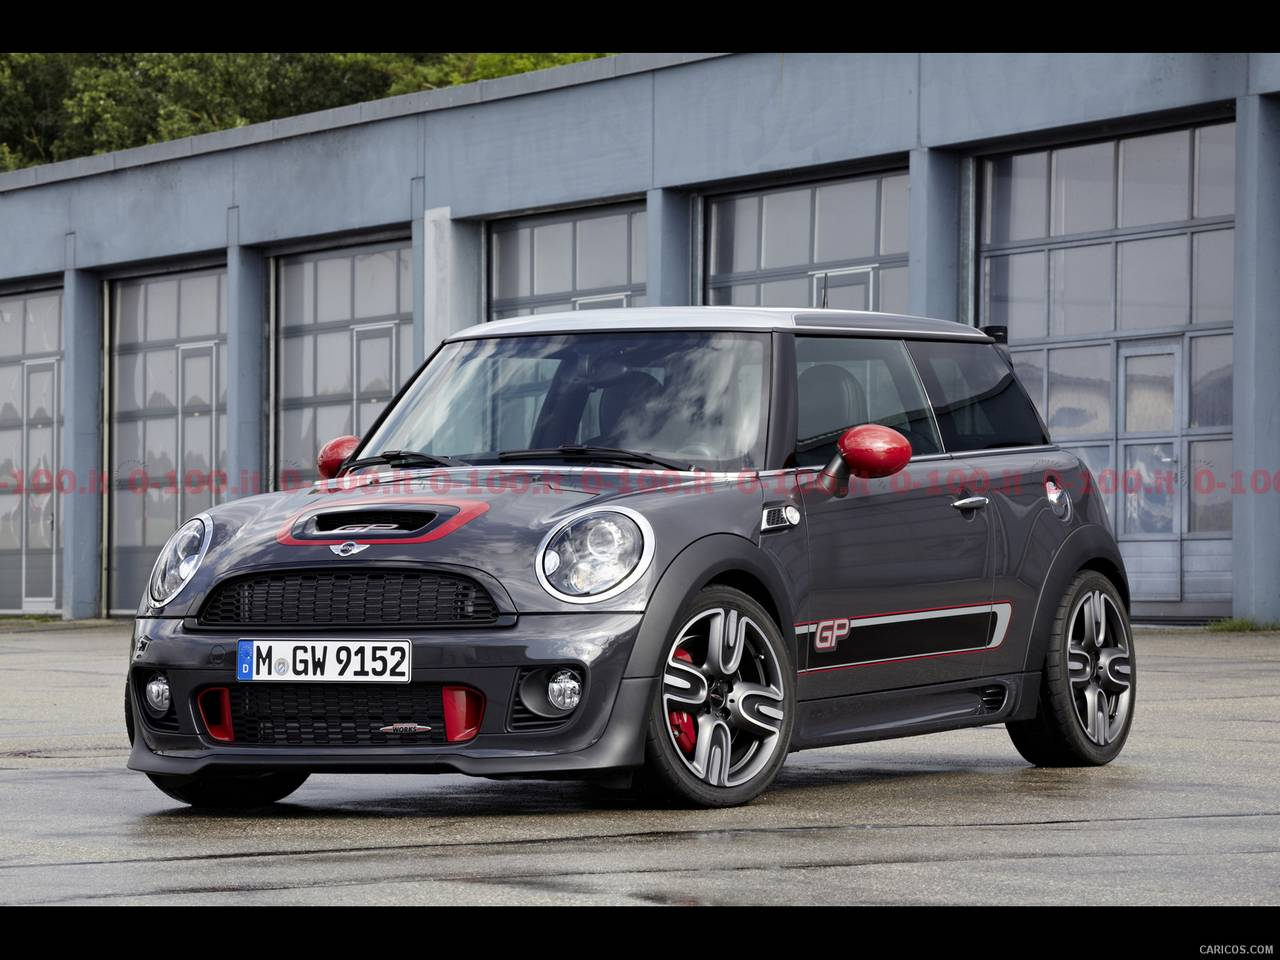 2013-mini-john-cooper-works-gp_0-100_15